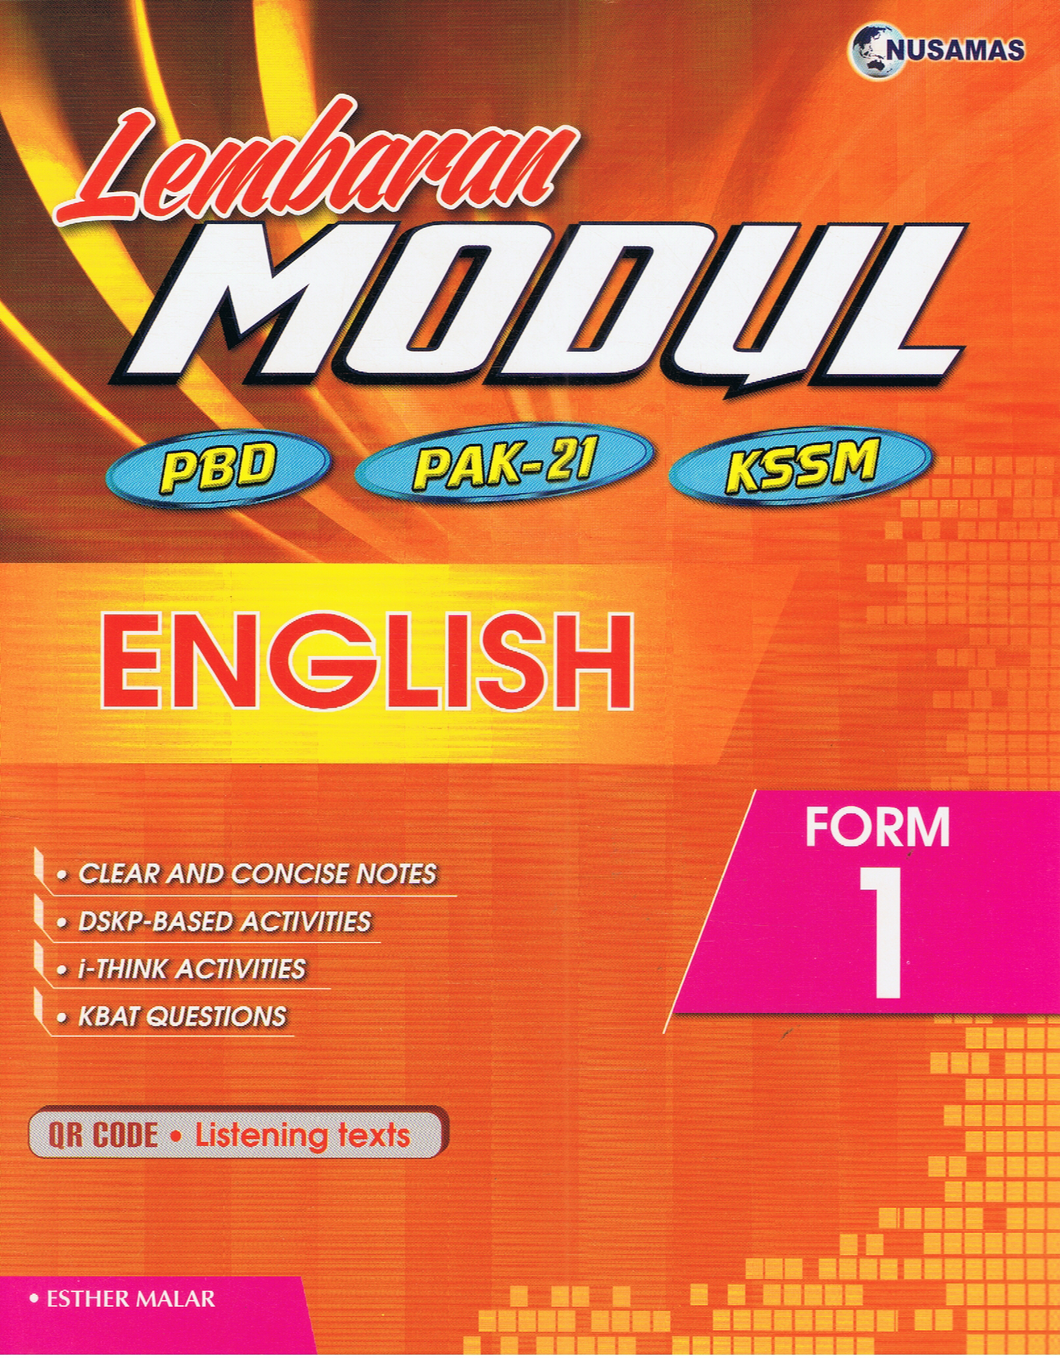 Lembaran Modul English Form 1